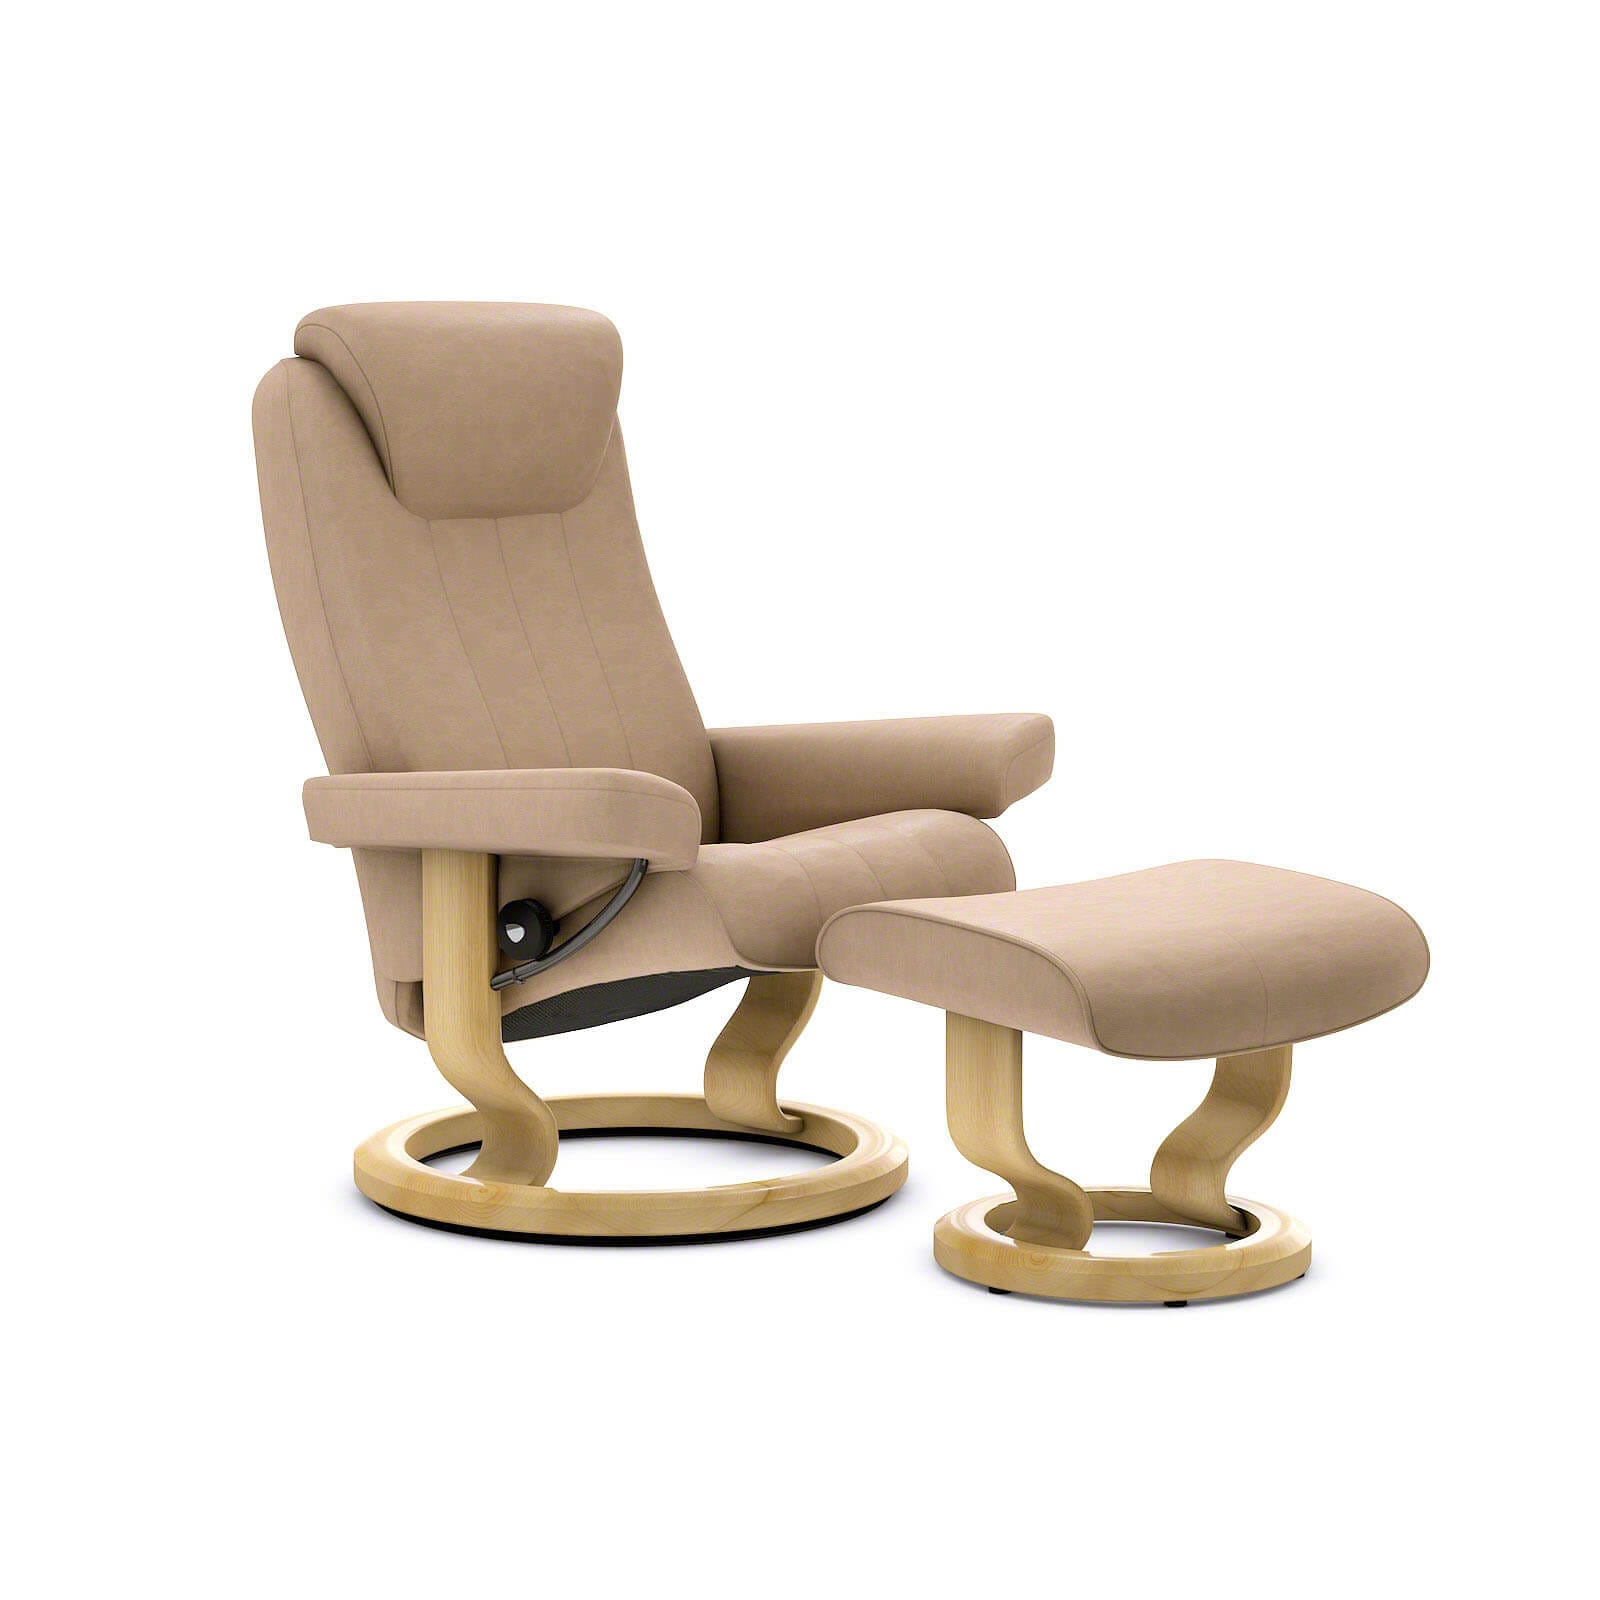 Sessel Sand Stressless Bliss Sessel Paloma Sand Mit Hocker Stressless